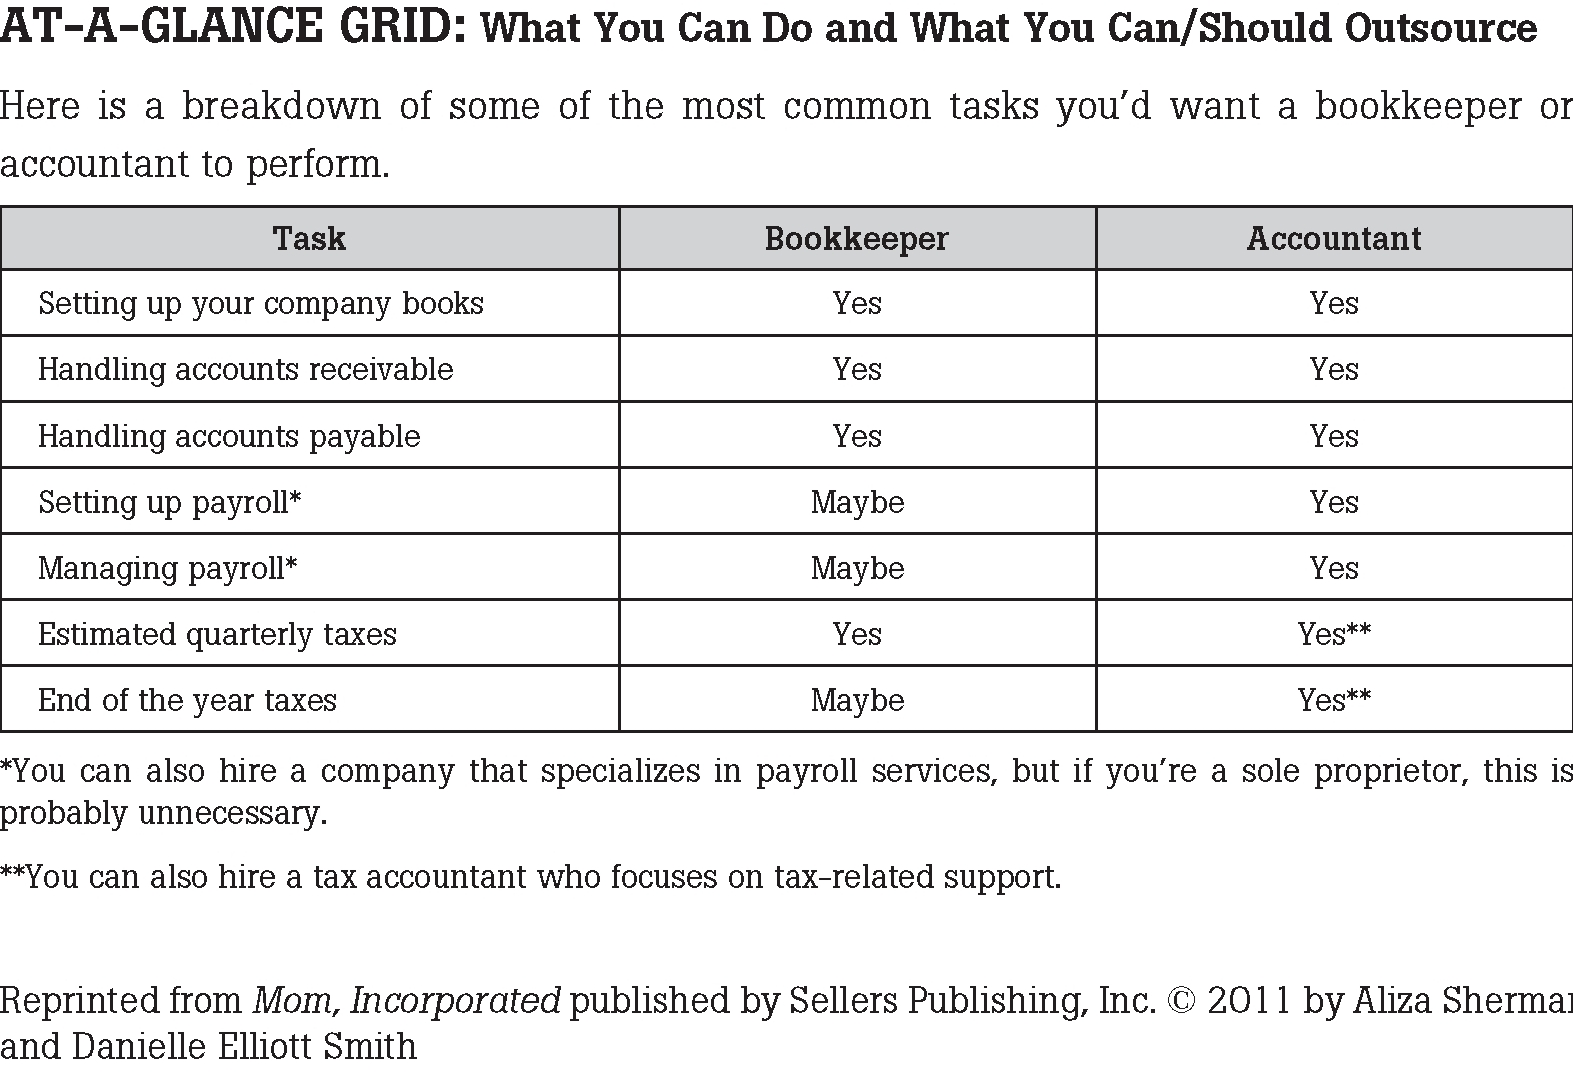 Worksheets Decision Making Worksheet worksheet no 7 outsourcing mom incorporated the book download at a glance grid